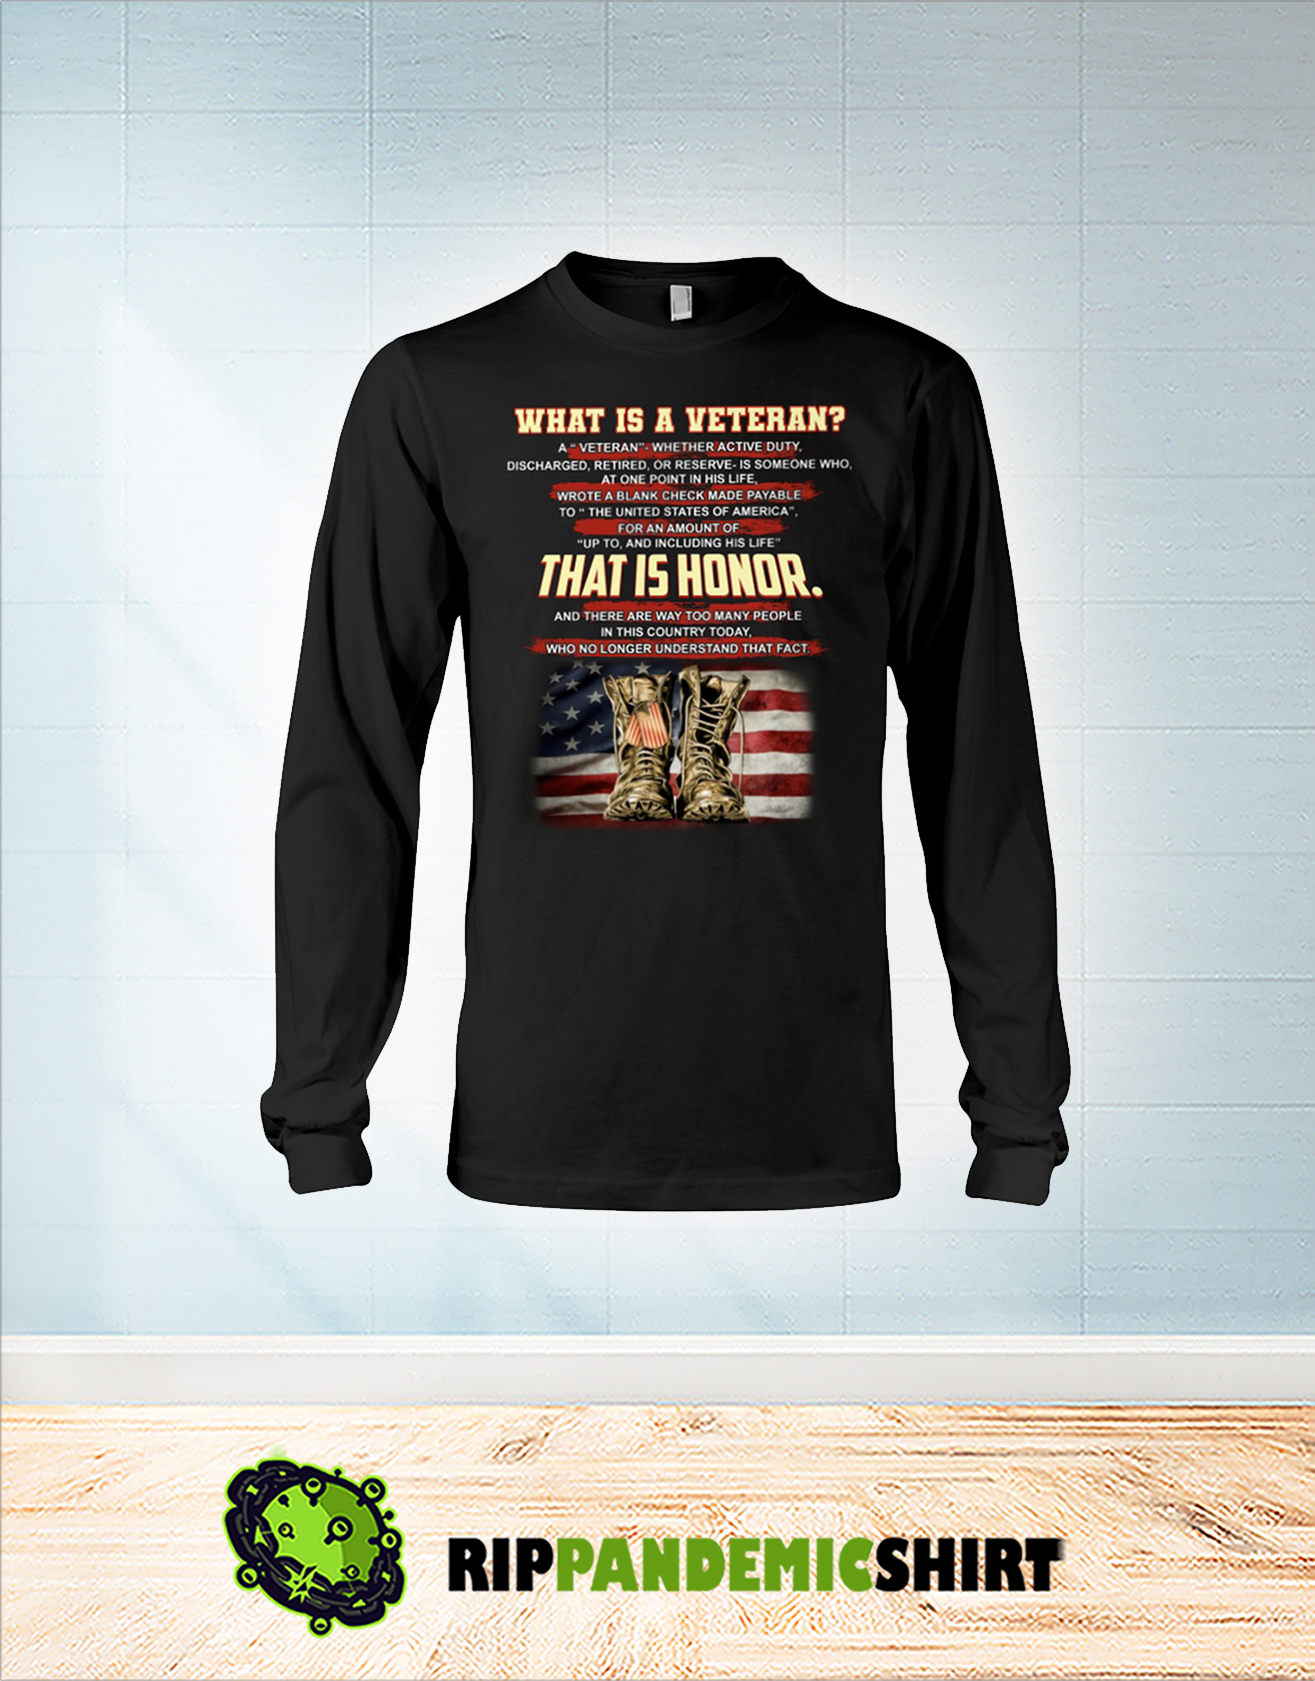 What is a veteran that is honor long sleeve